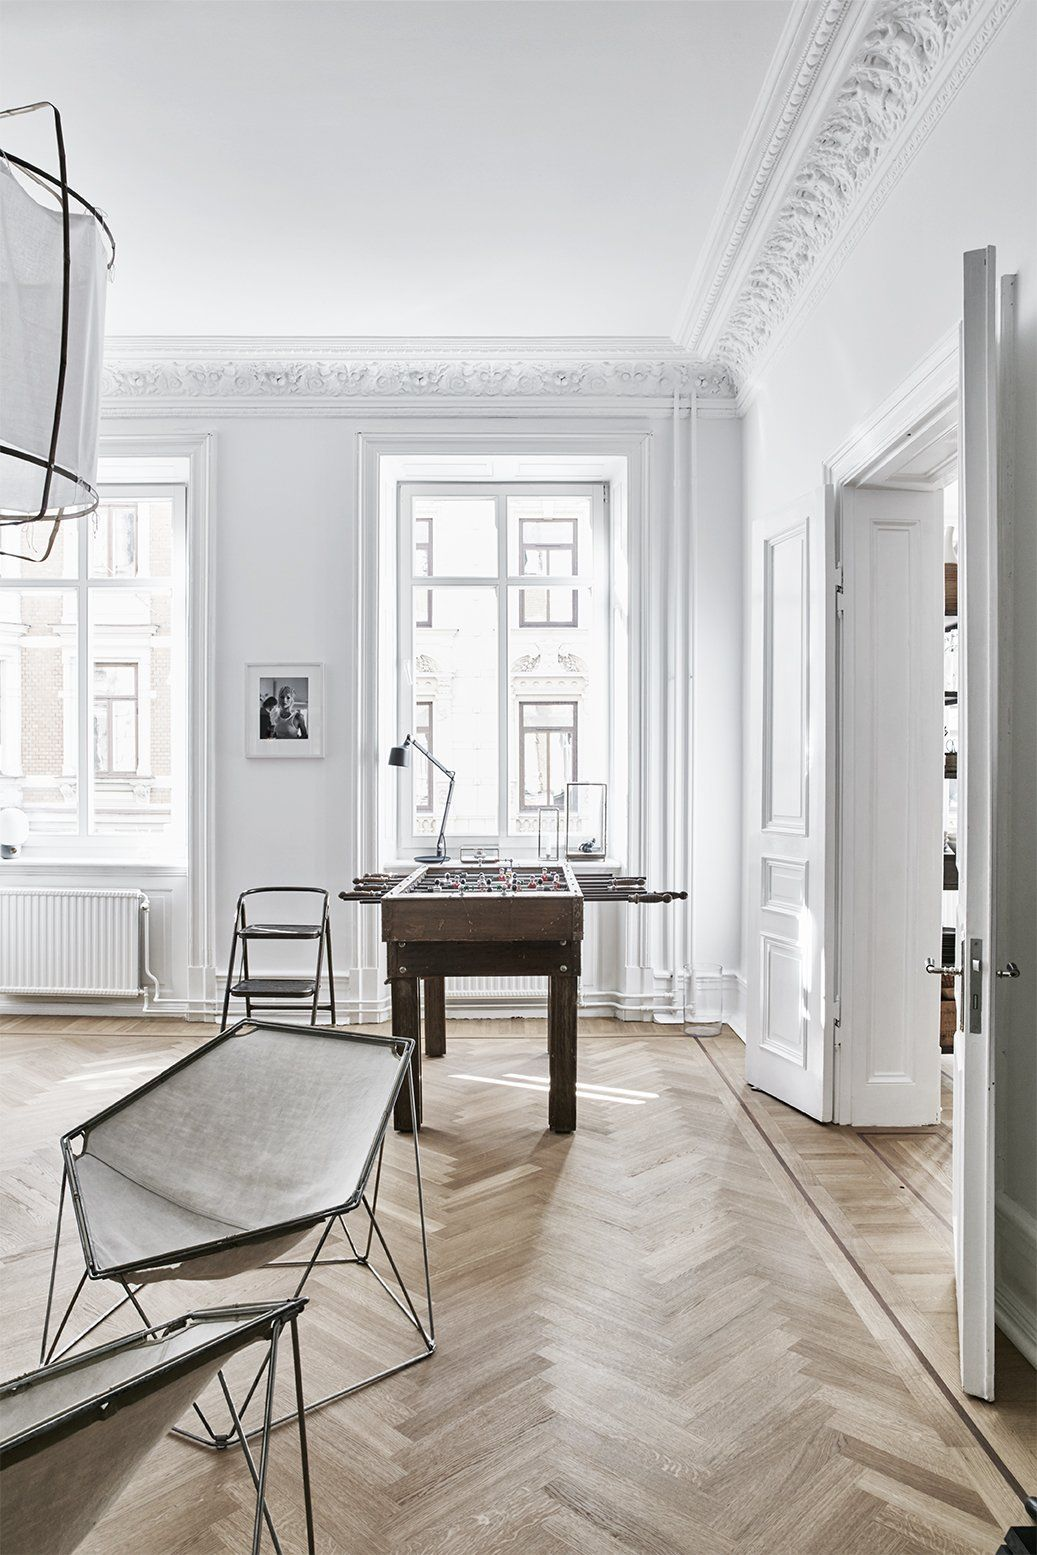 A careful renovation of a 19th century flat in gothenburg brings it back to life photo 5 of 11 the penta chairs are by kim moltzer and jean paul barray